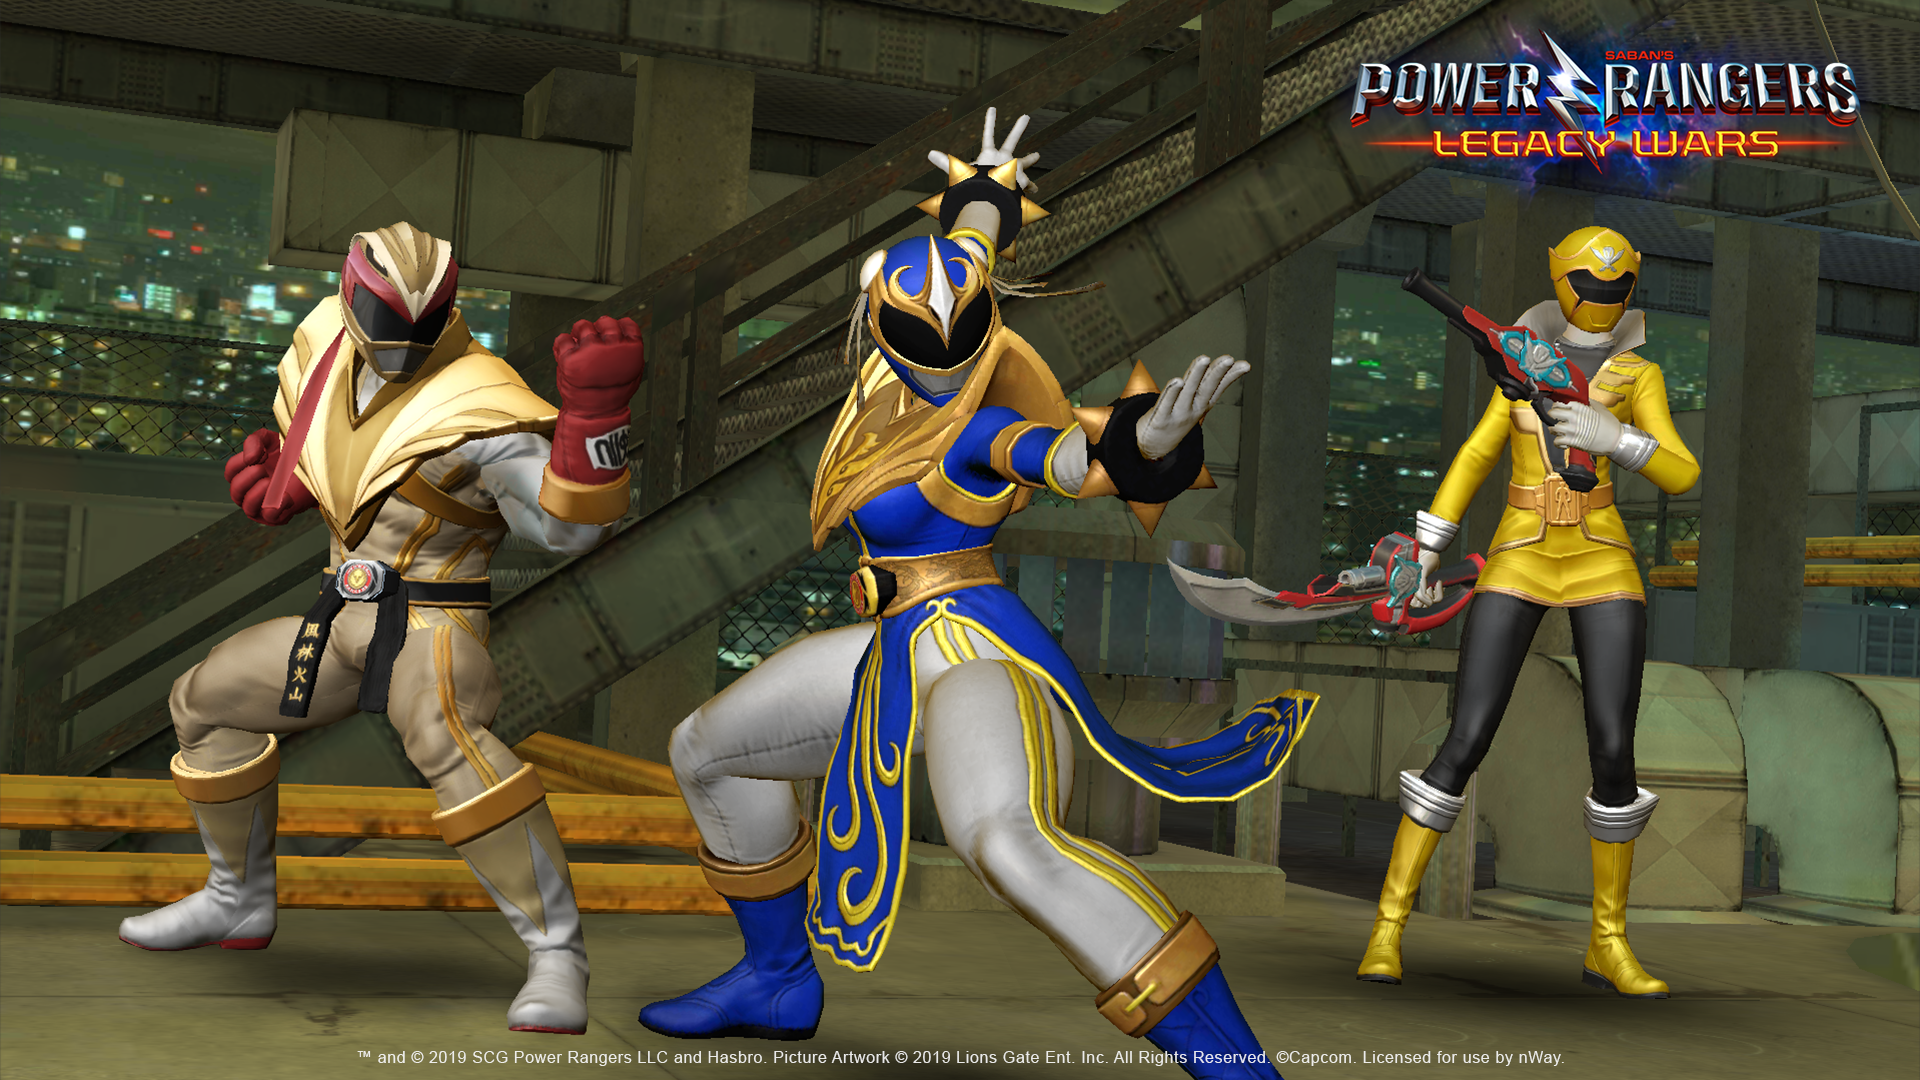 News Street Fighter Character Chun Li Becomes A Power Ranger In